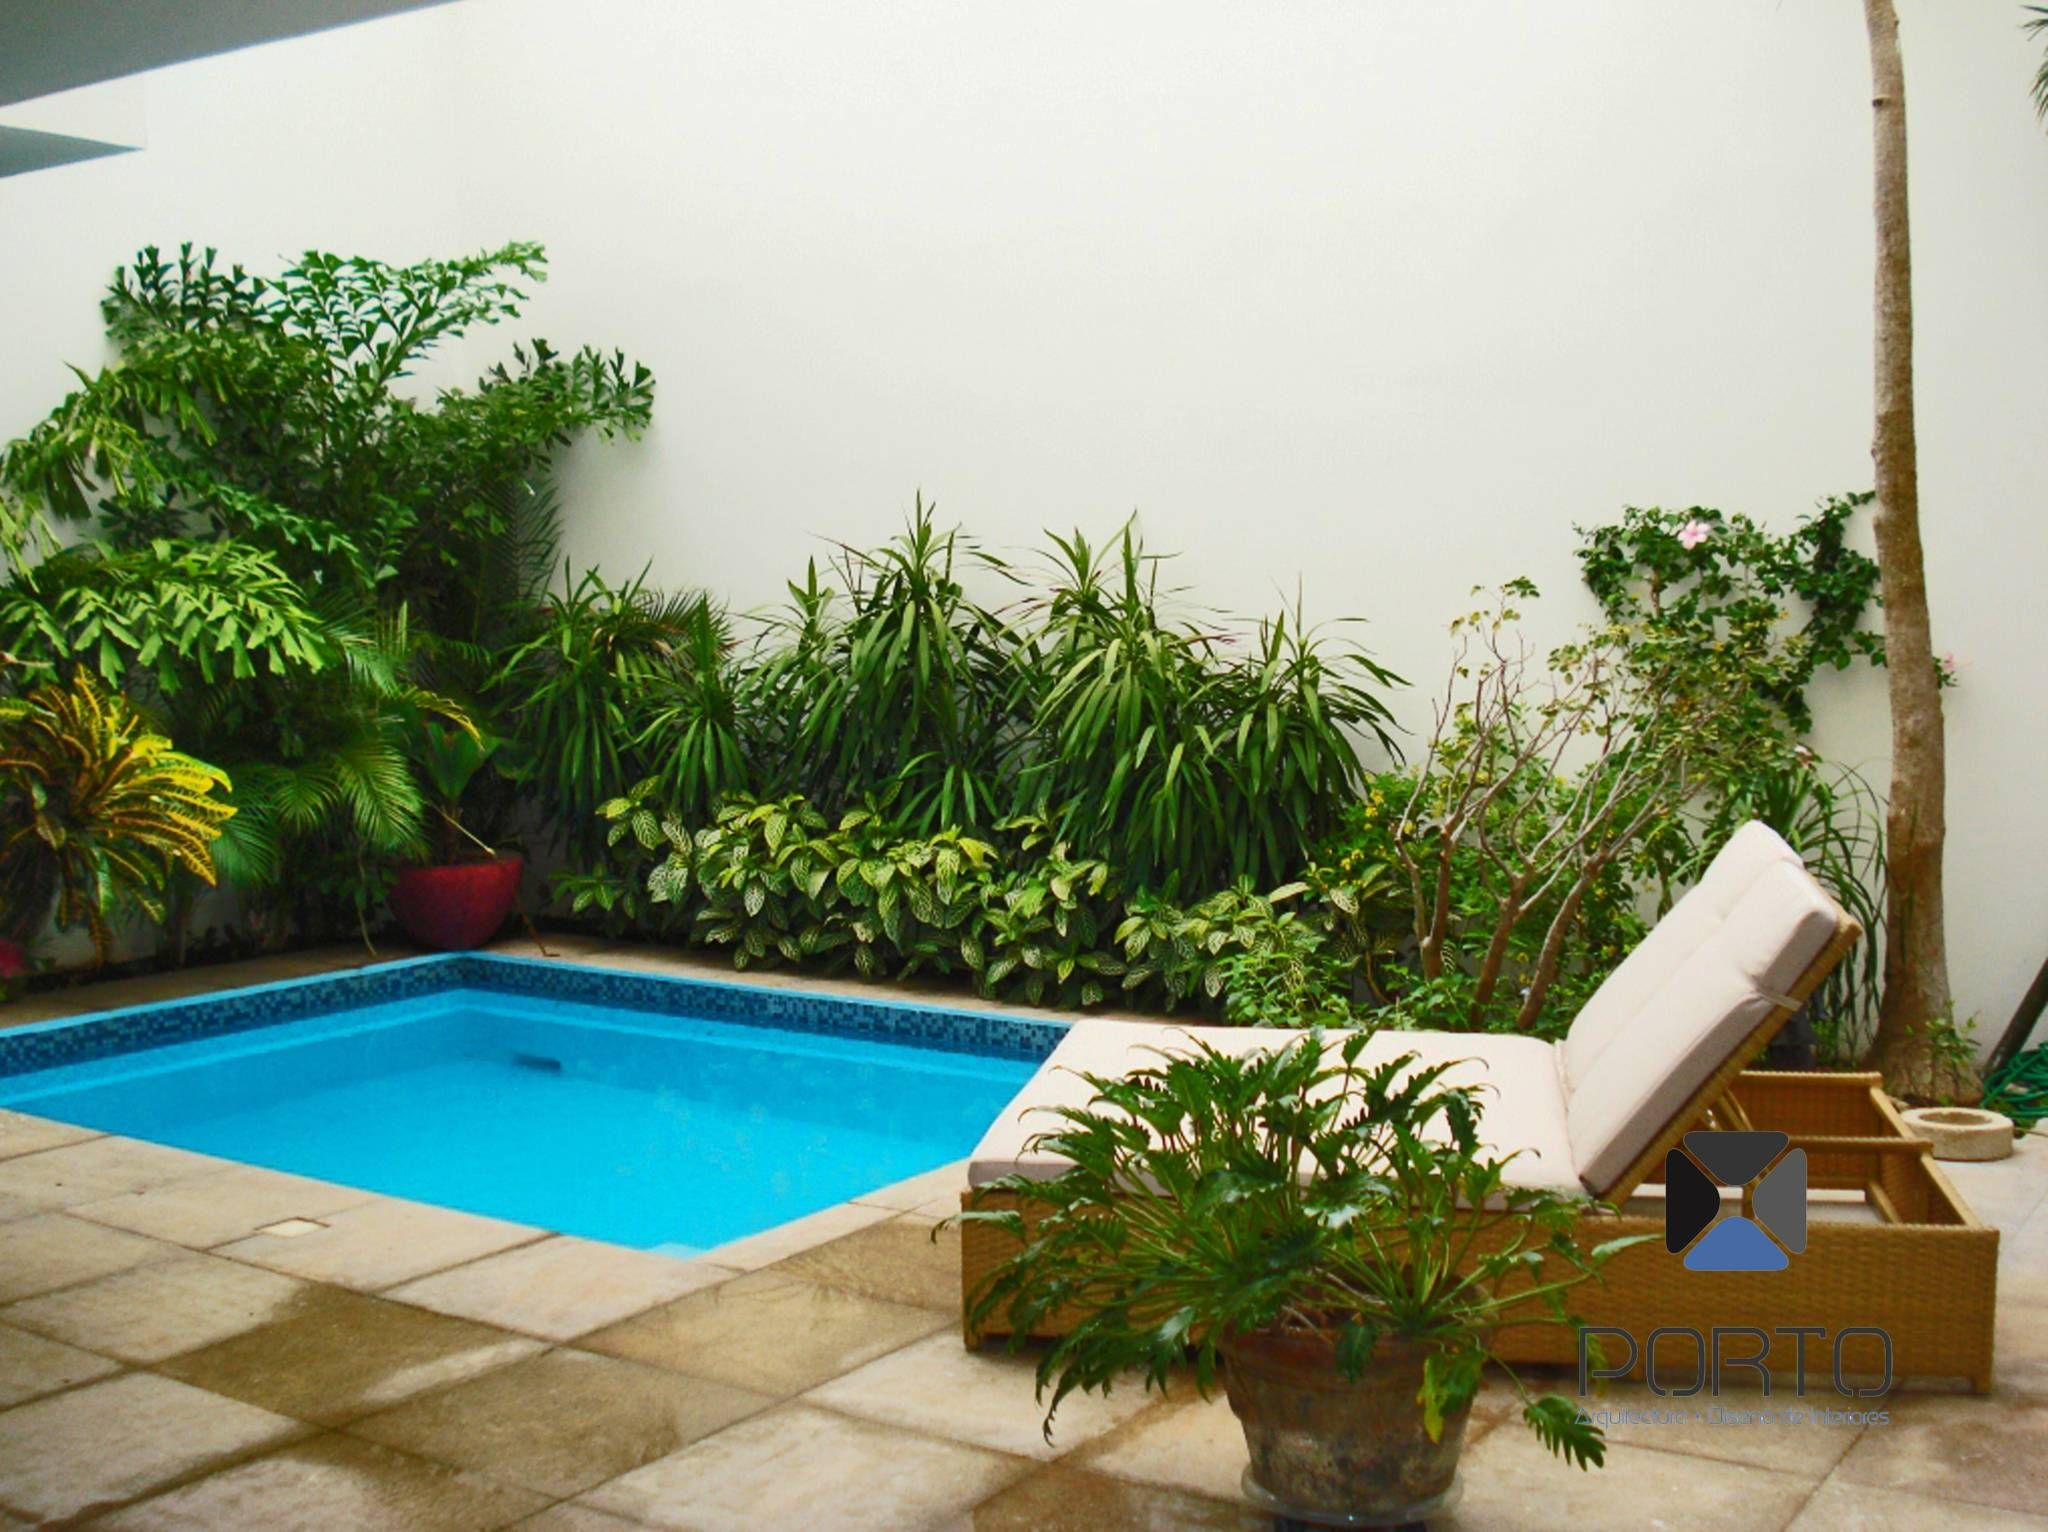 Explore Small Pools, Small Pool Ideas, And More